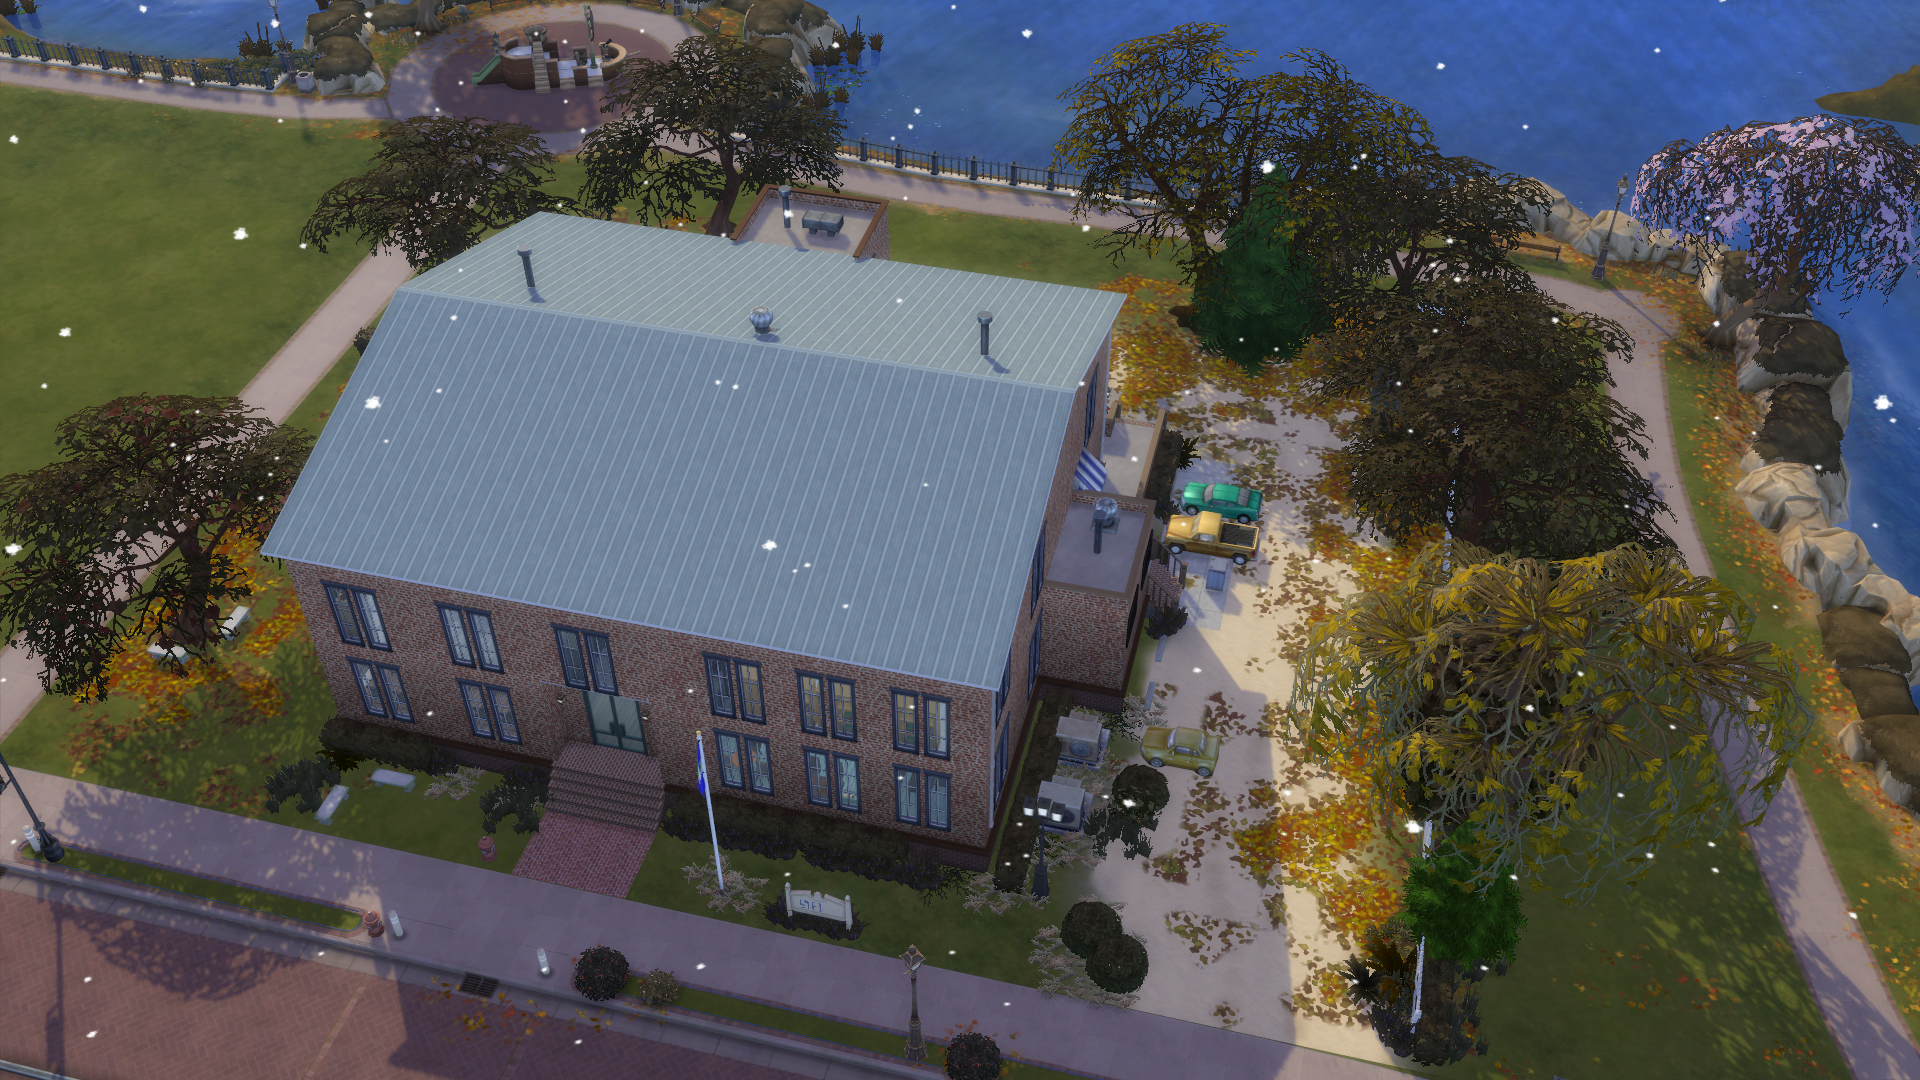 Micanopy Library building as made in the Sims 4 game